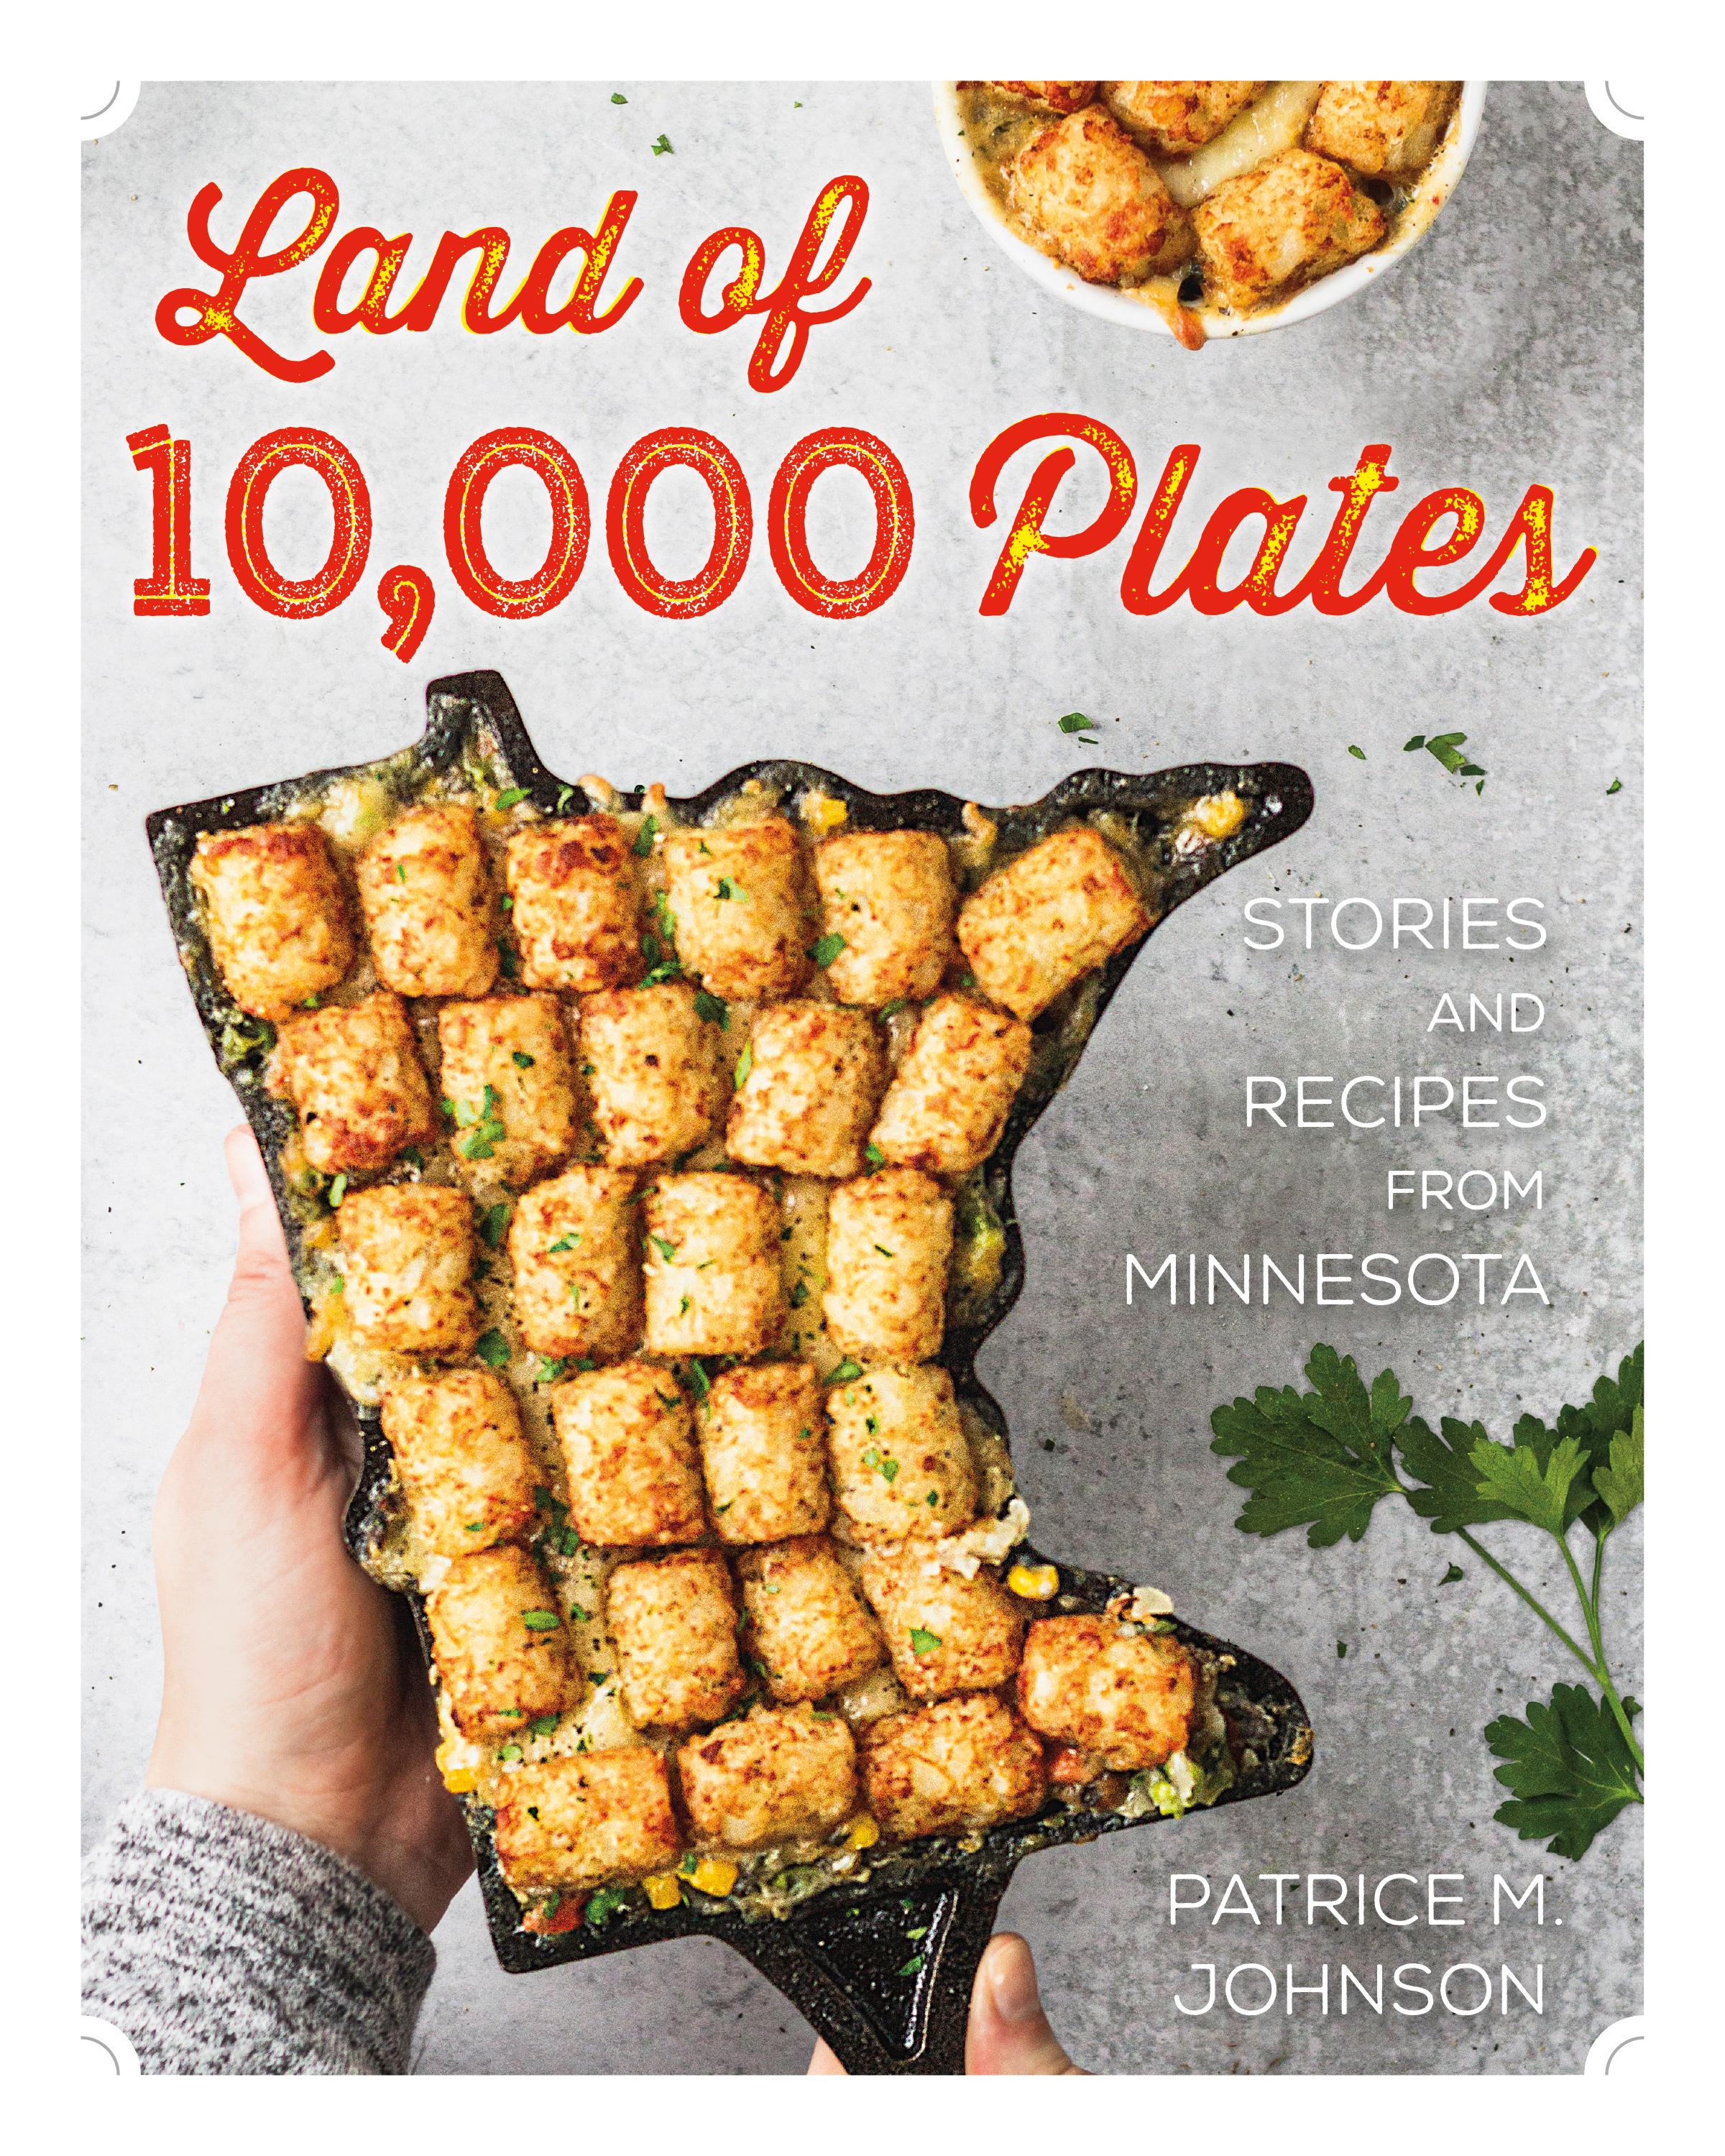 Land of 10,000 Plates